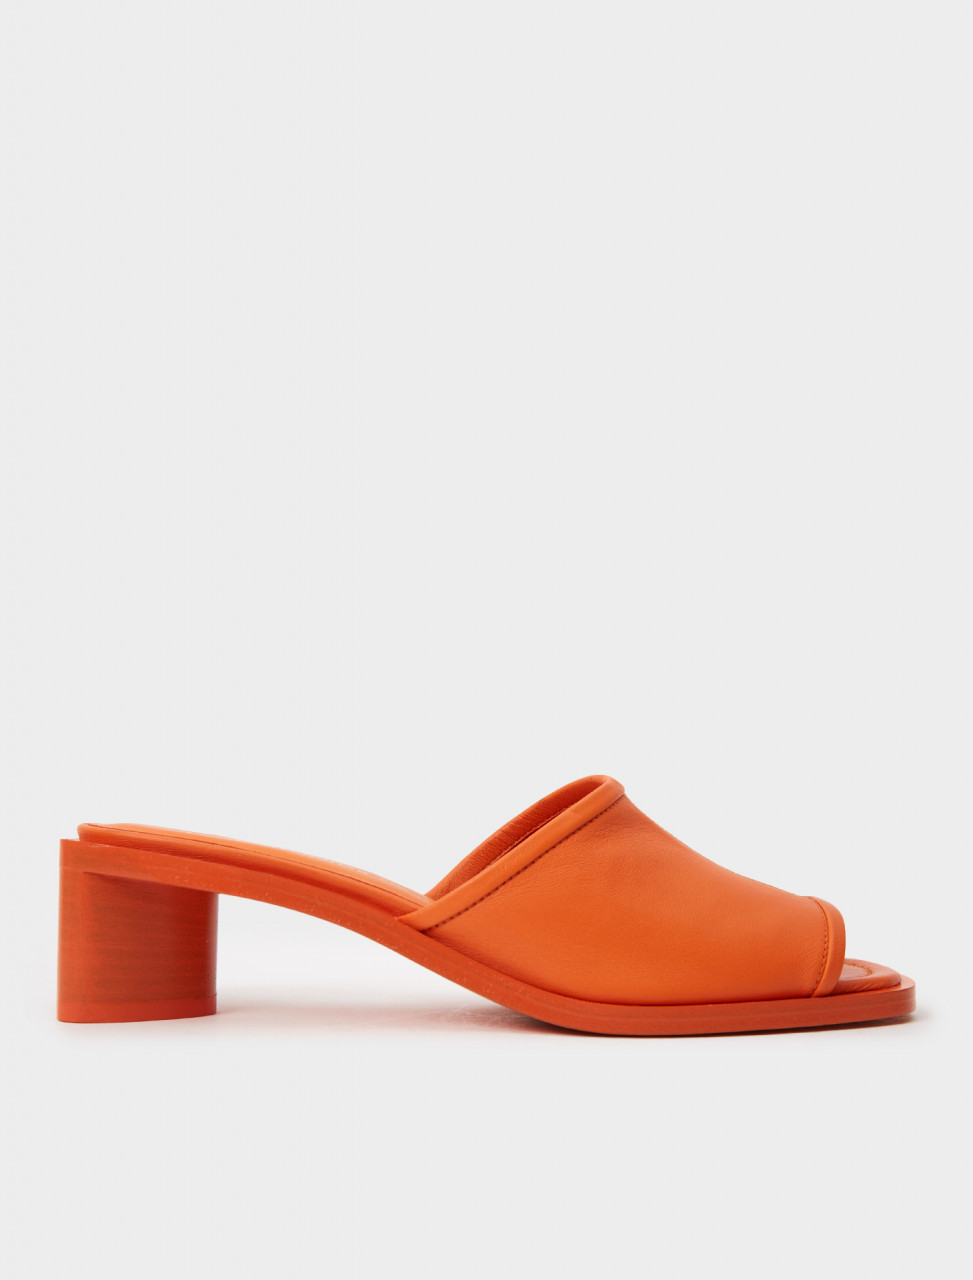 AD0349-AVZ ACNE STUDIOS SLIP ON HEELS ORANGE